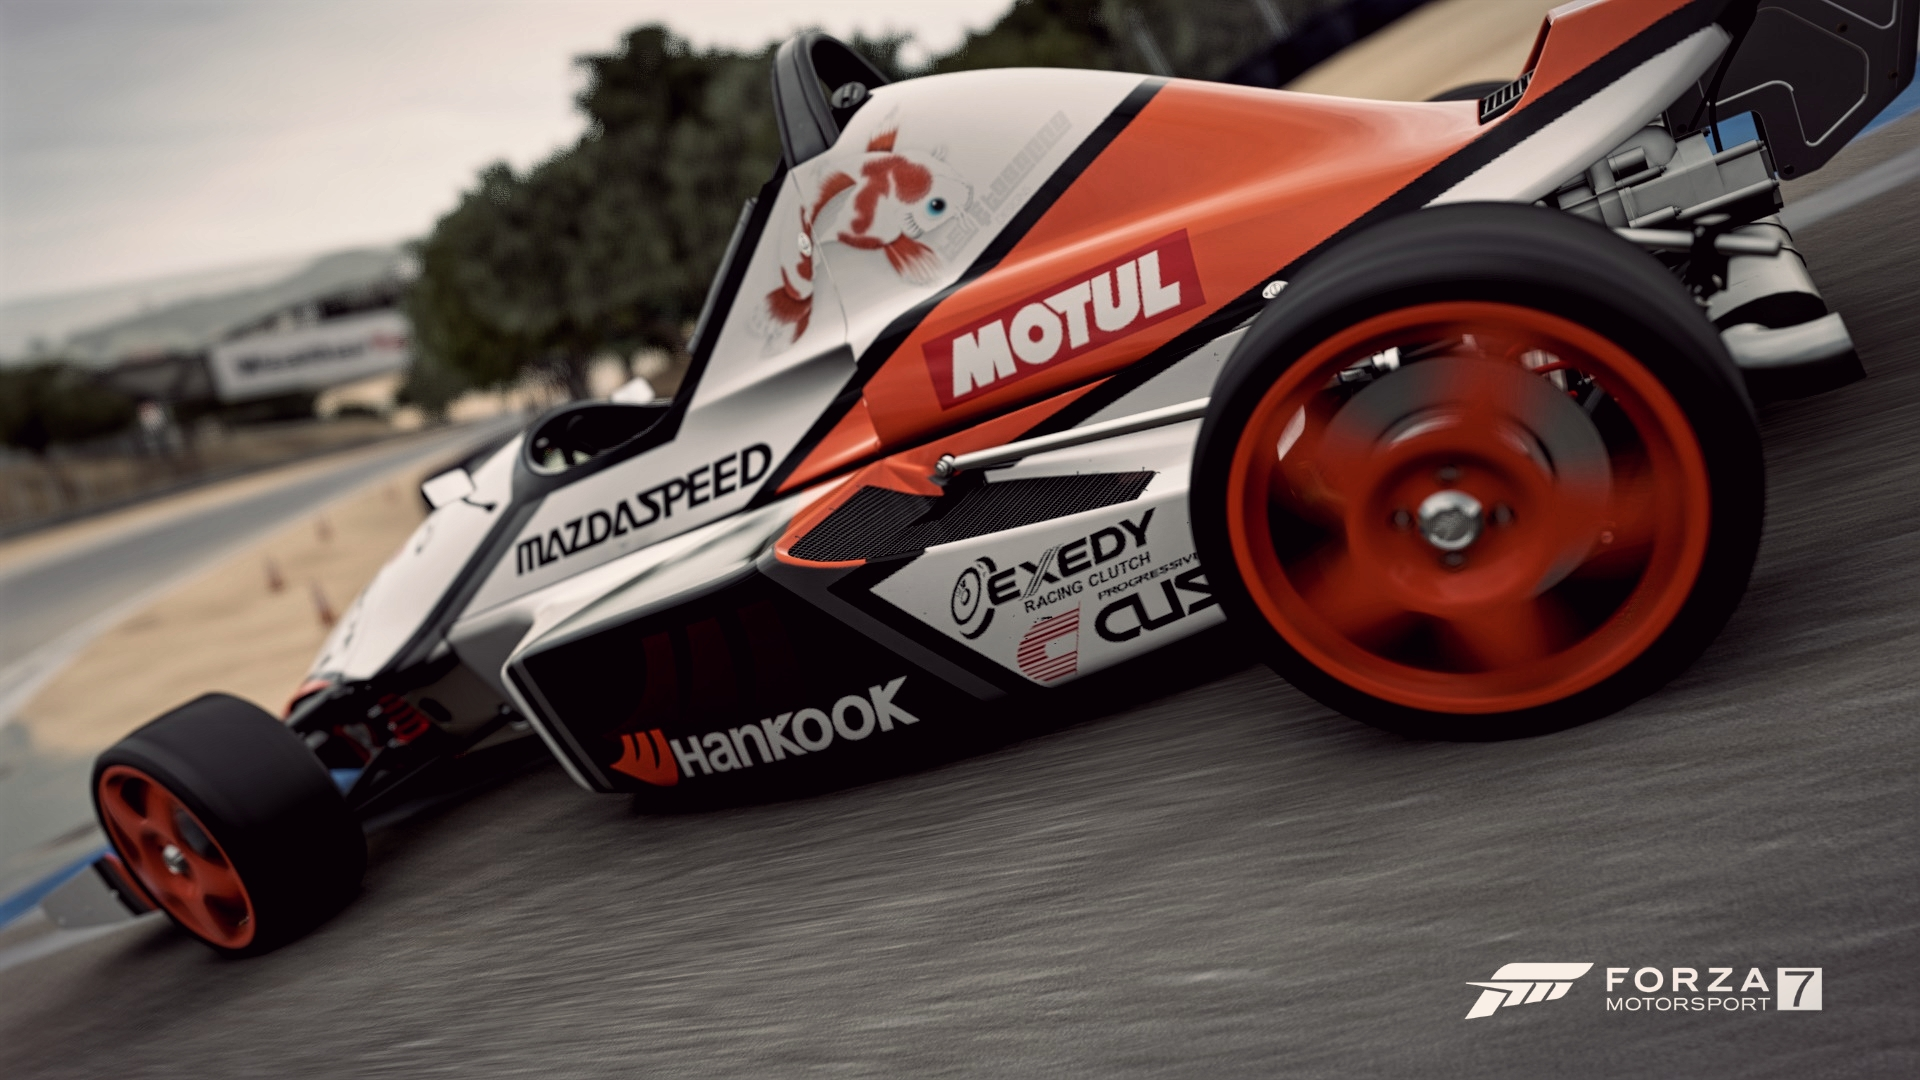 car mazda formula mazda file name hankook carp description race25